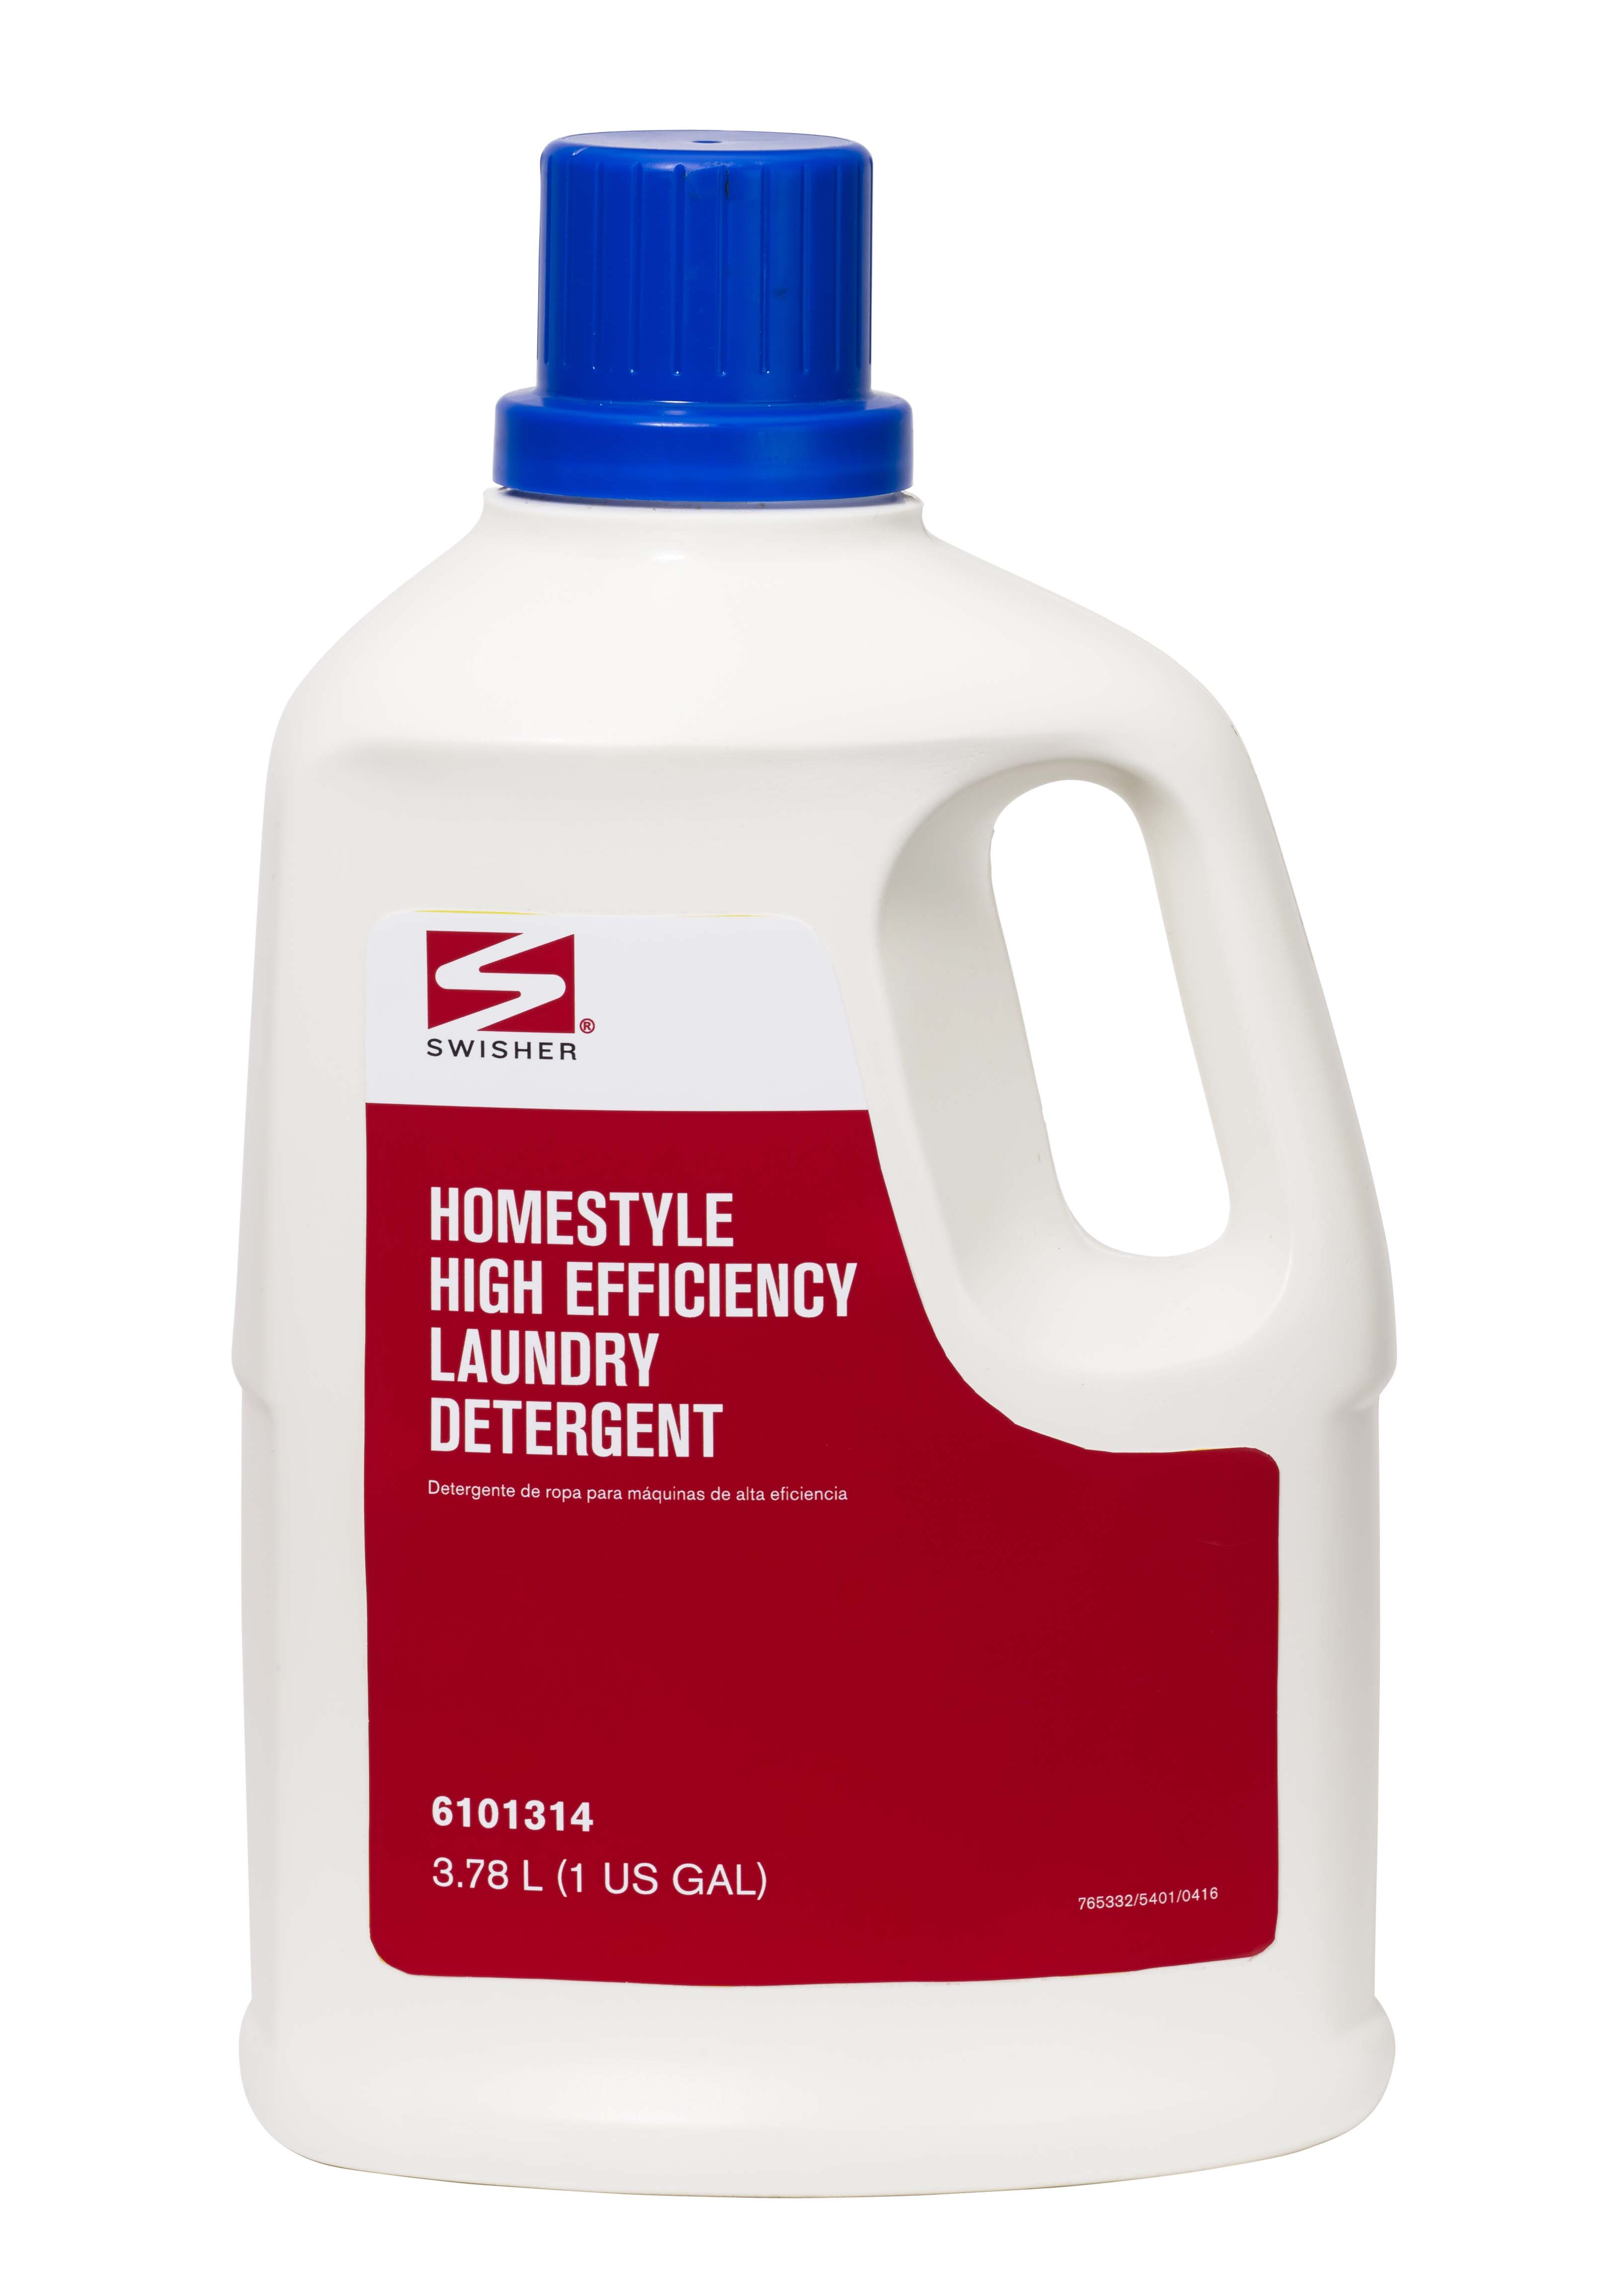 Swisher Homestyle High Efficiency Laundry Detergent